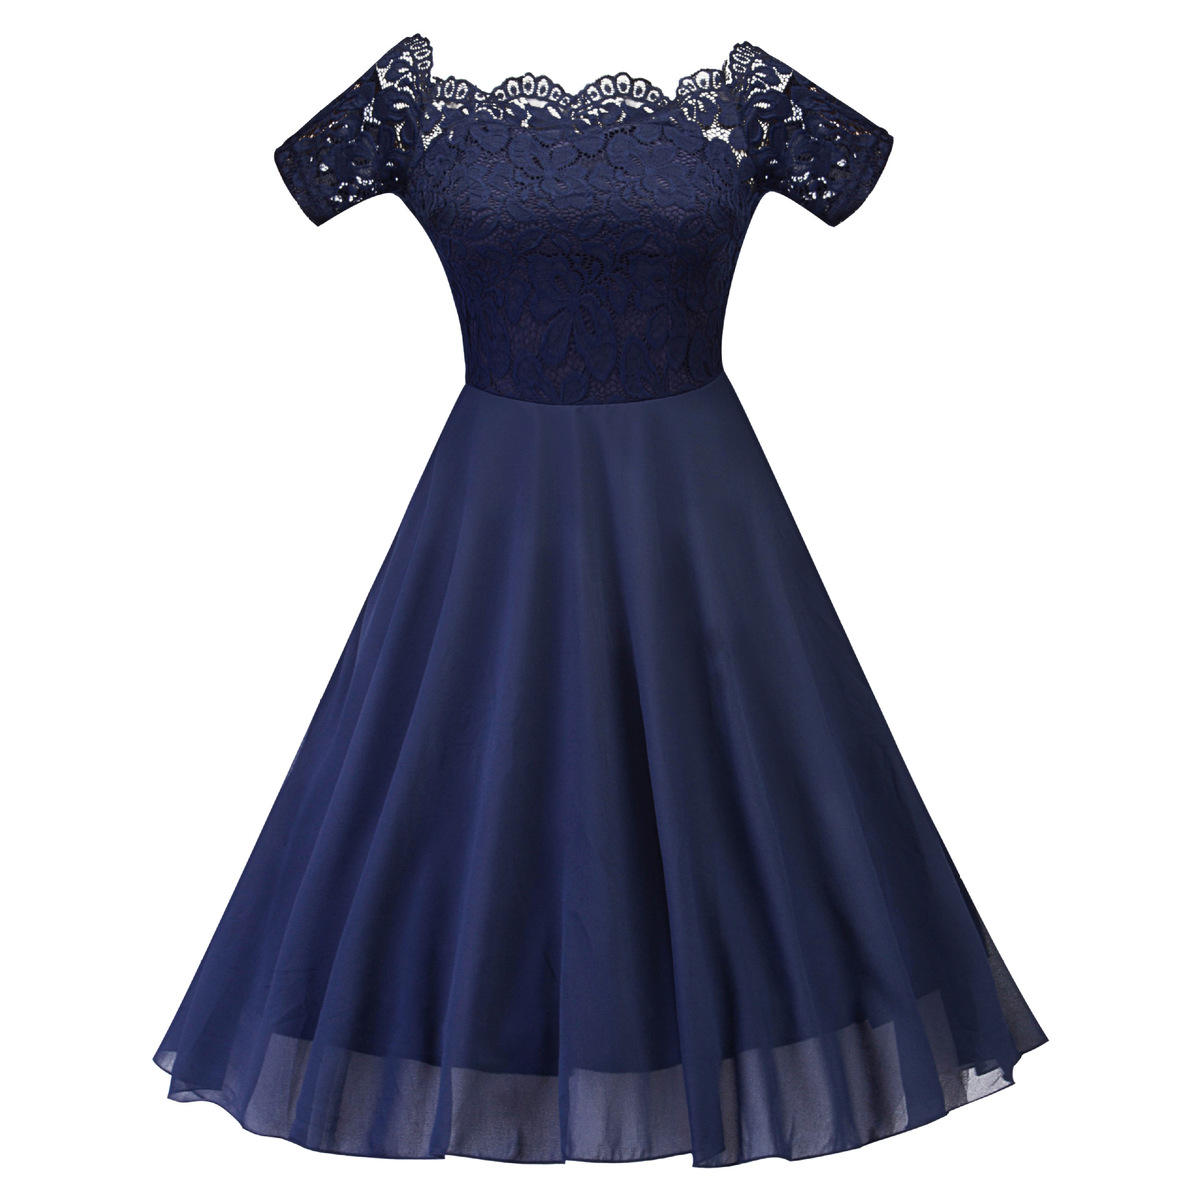 High Quality Short   Cocktail     Dresses   Navy Blue Chiffon Lace Short Sleeves Party Gowns Girls Elegant New Mini Vestido Coctel